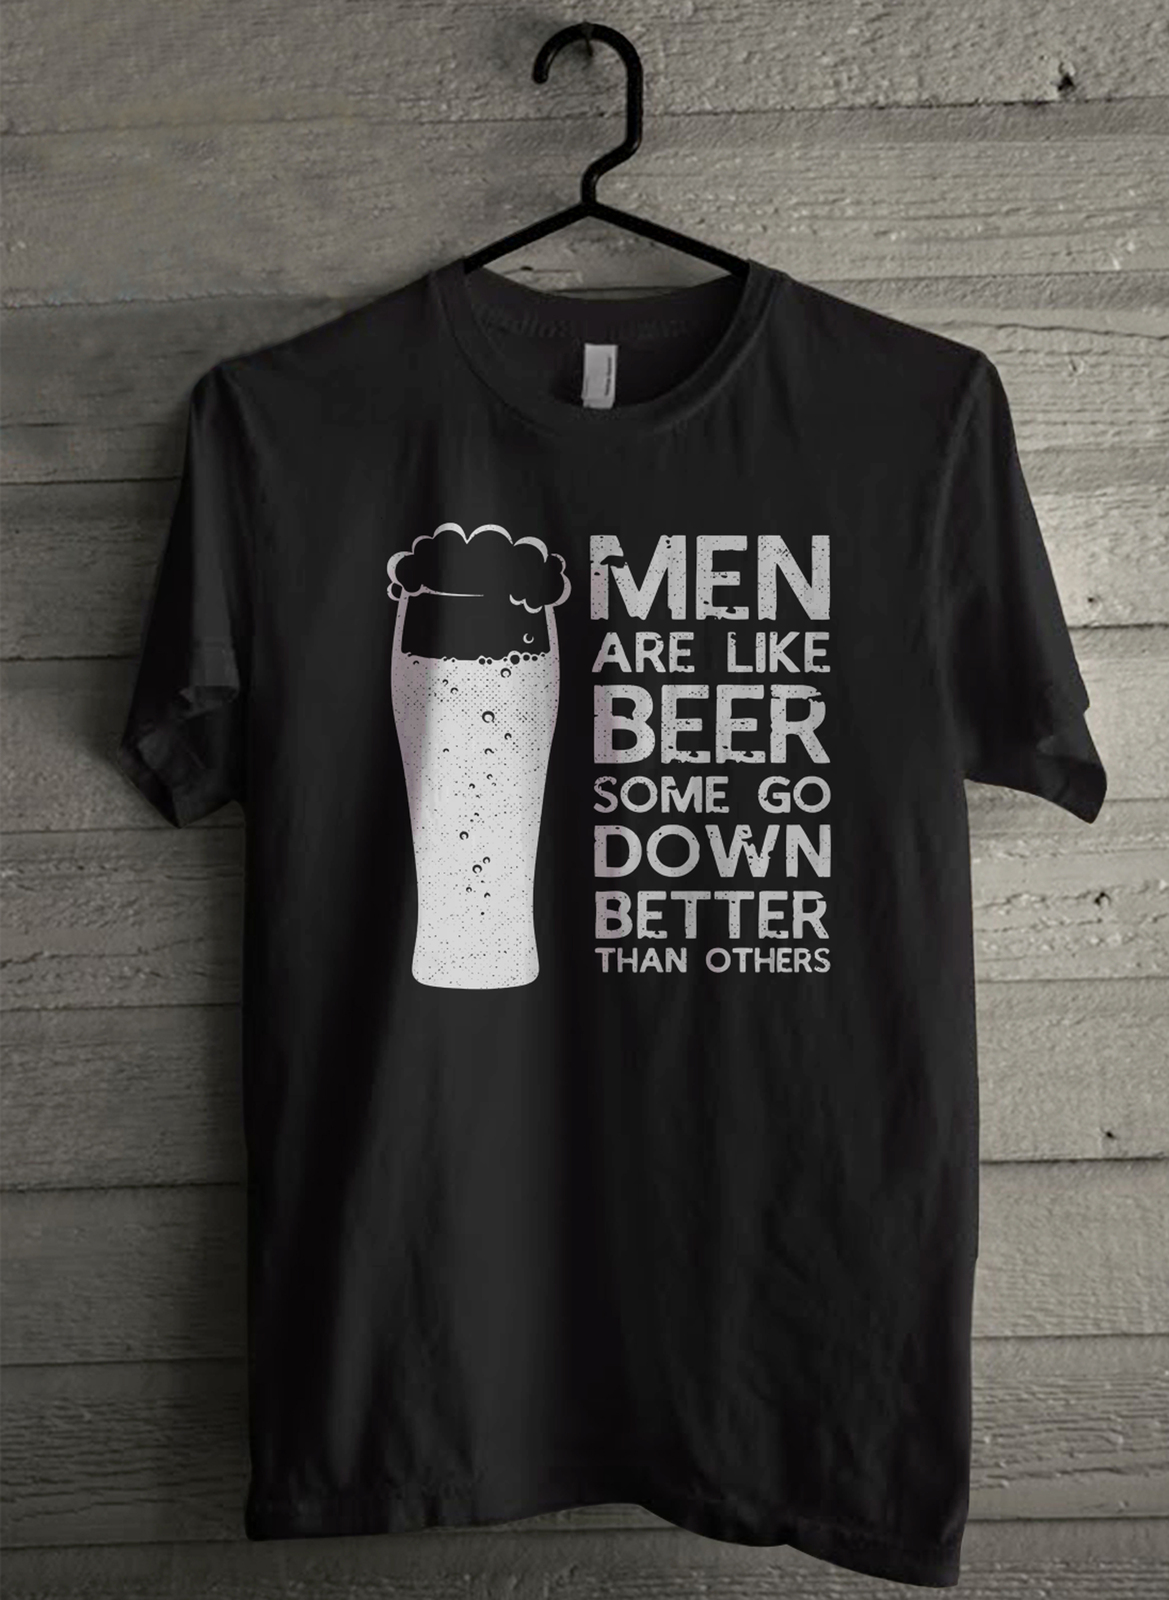 Men are like beer some go down better than others